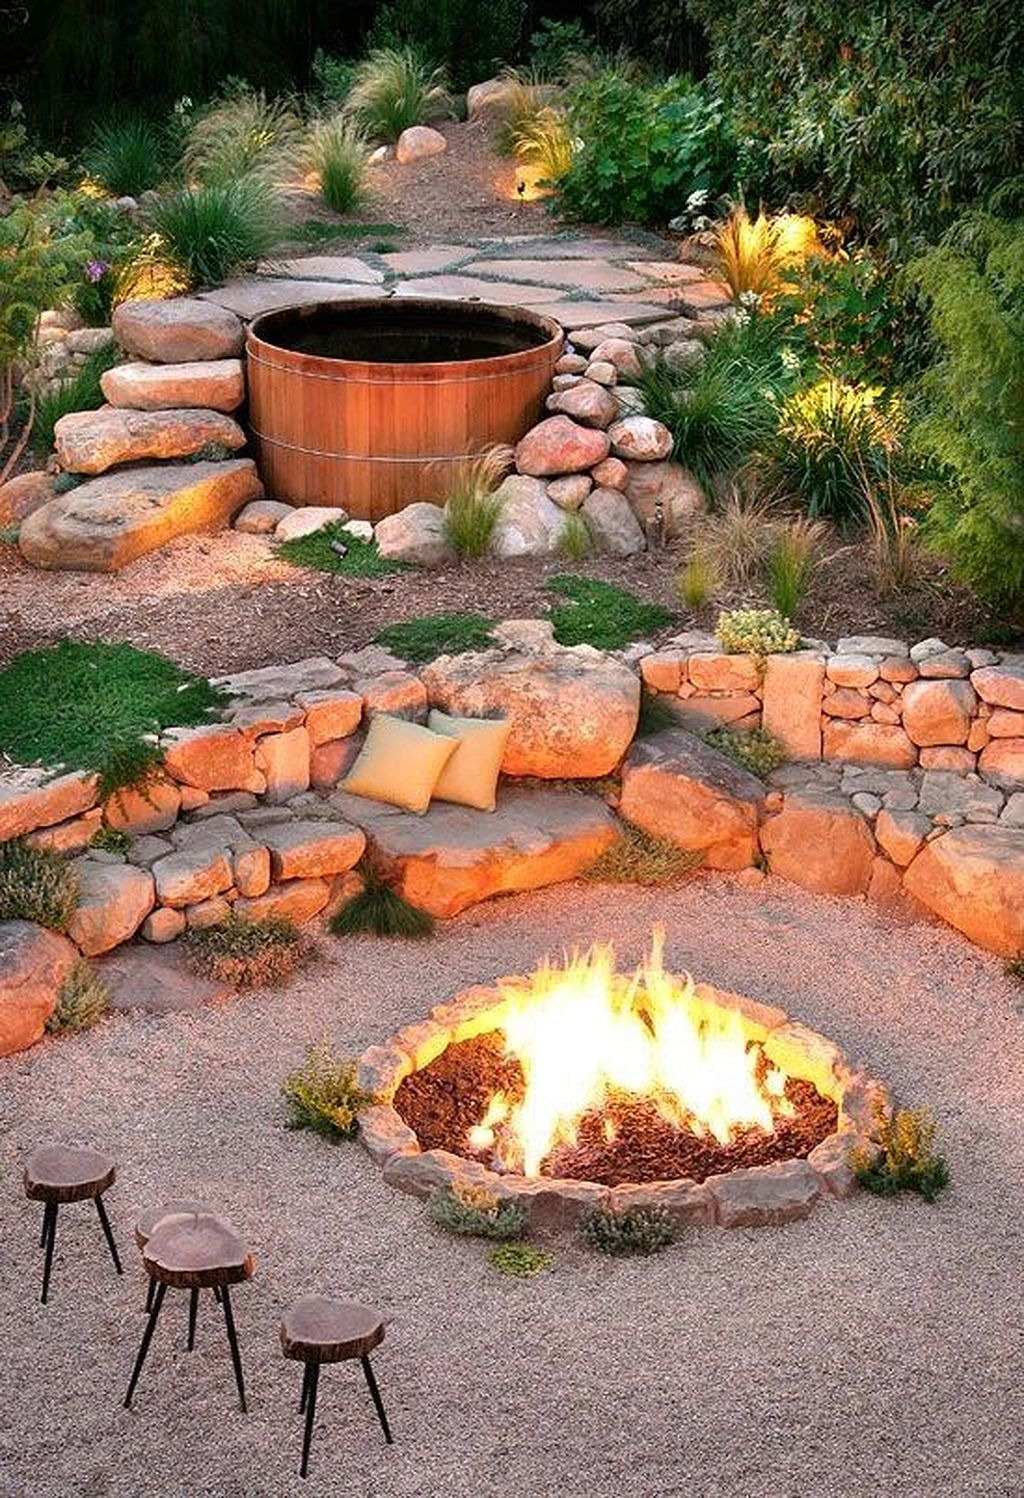 backyard fire pit ideas with pleasant seating area garden and